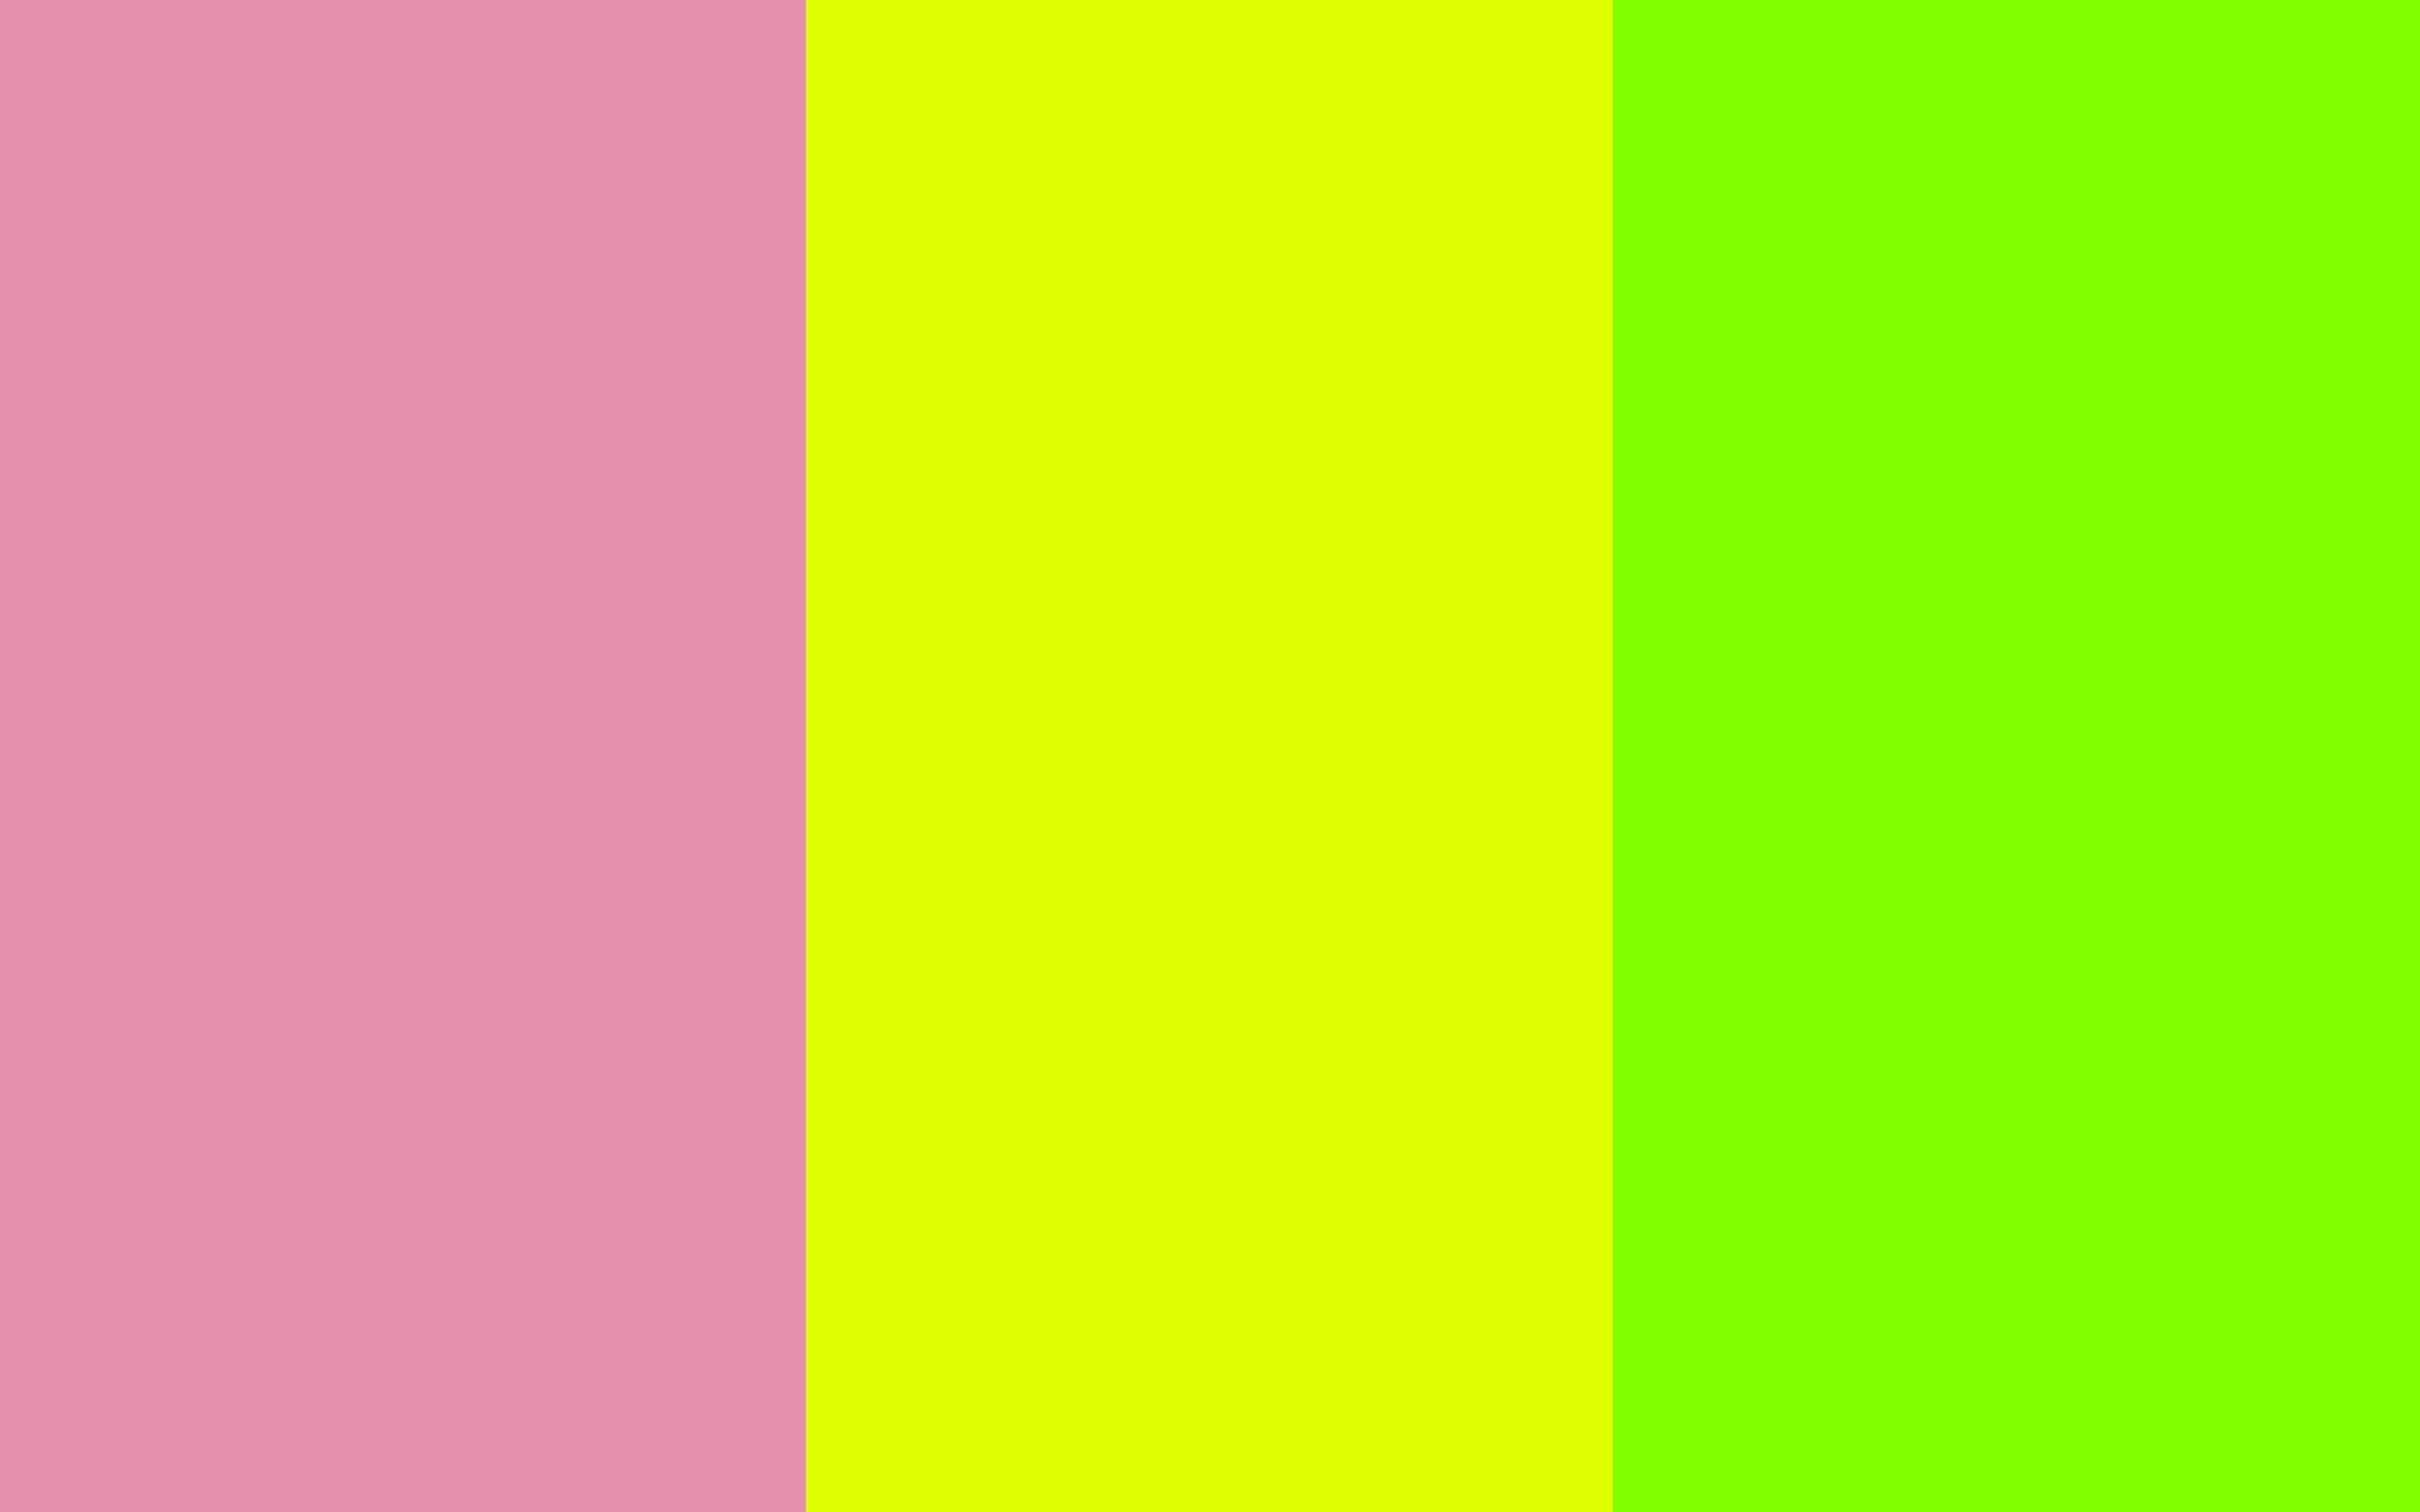 2560x1600-charm-pink-chartreuse-traditional-chartreuse-for-web-